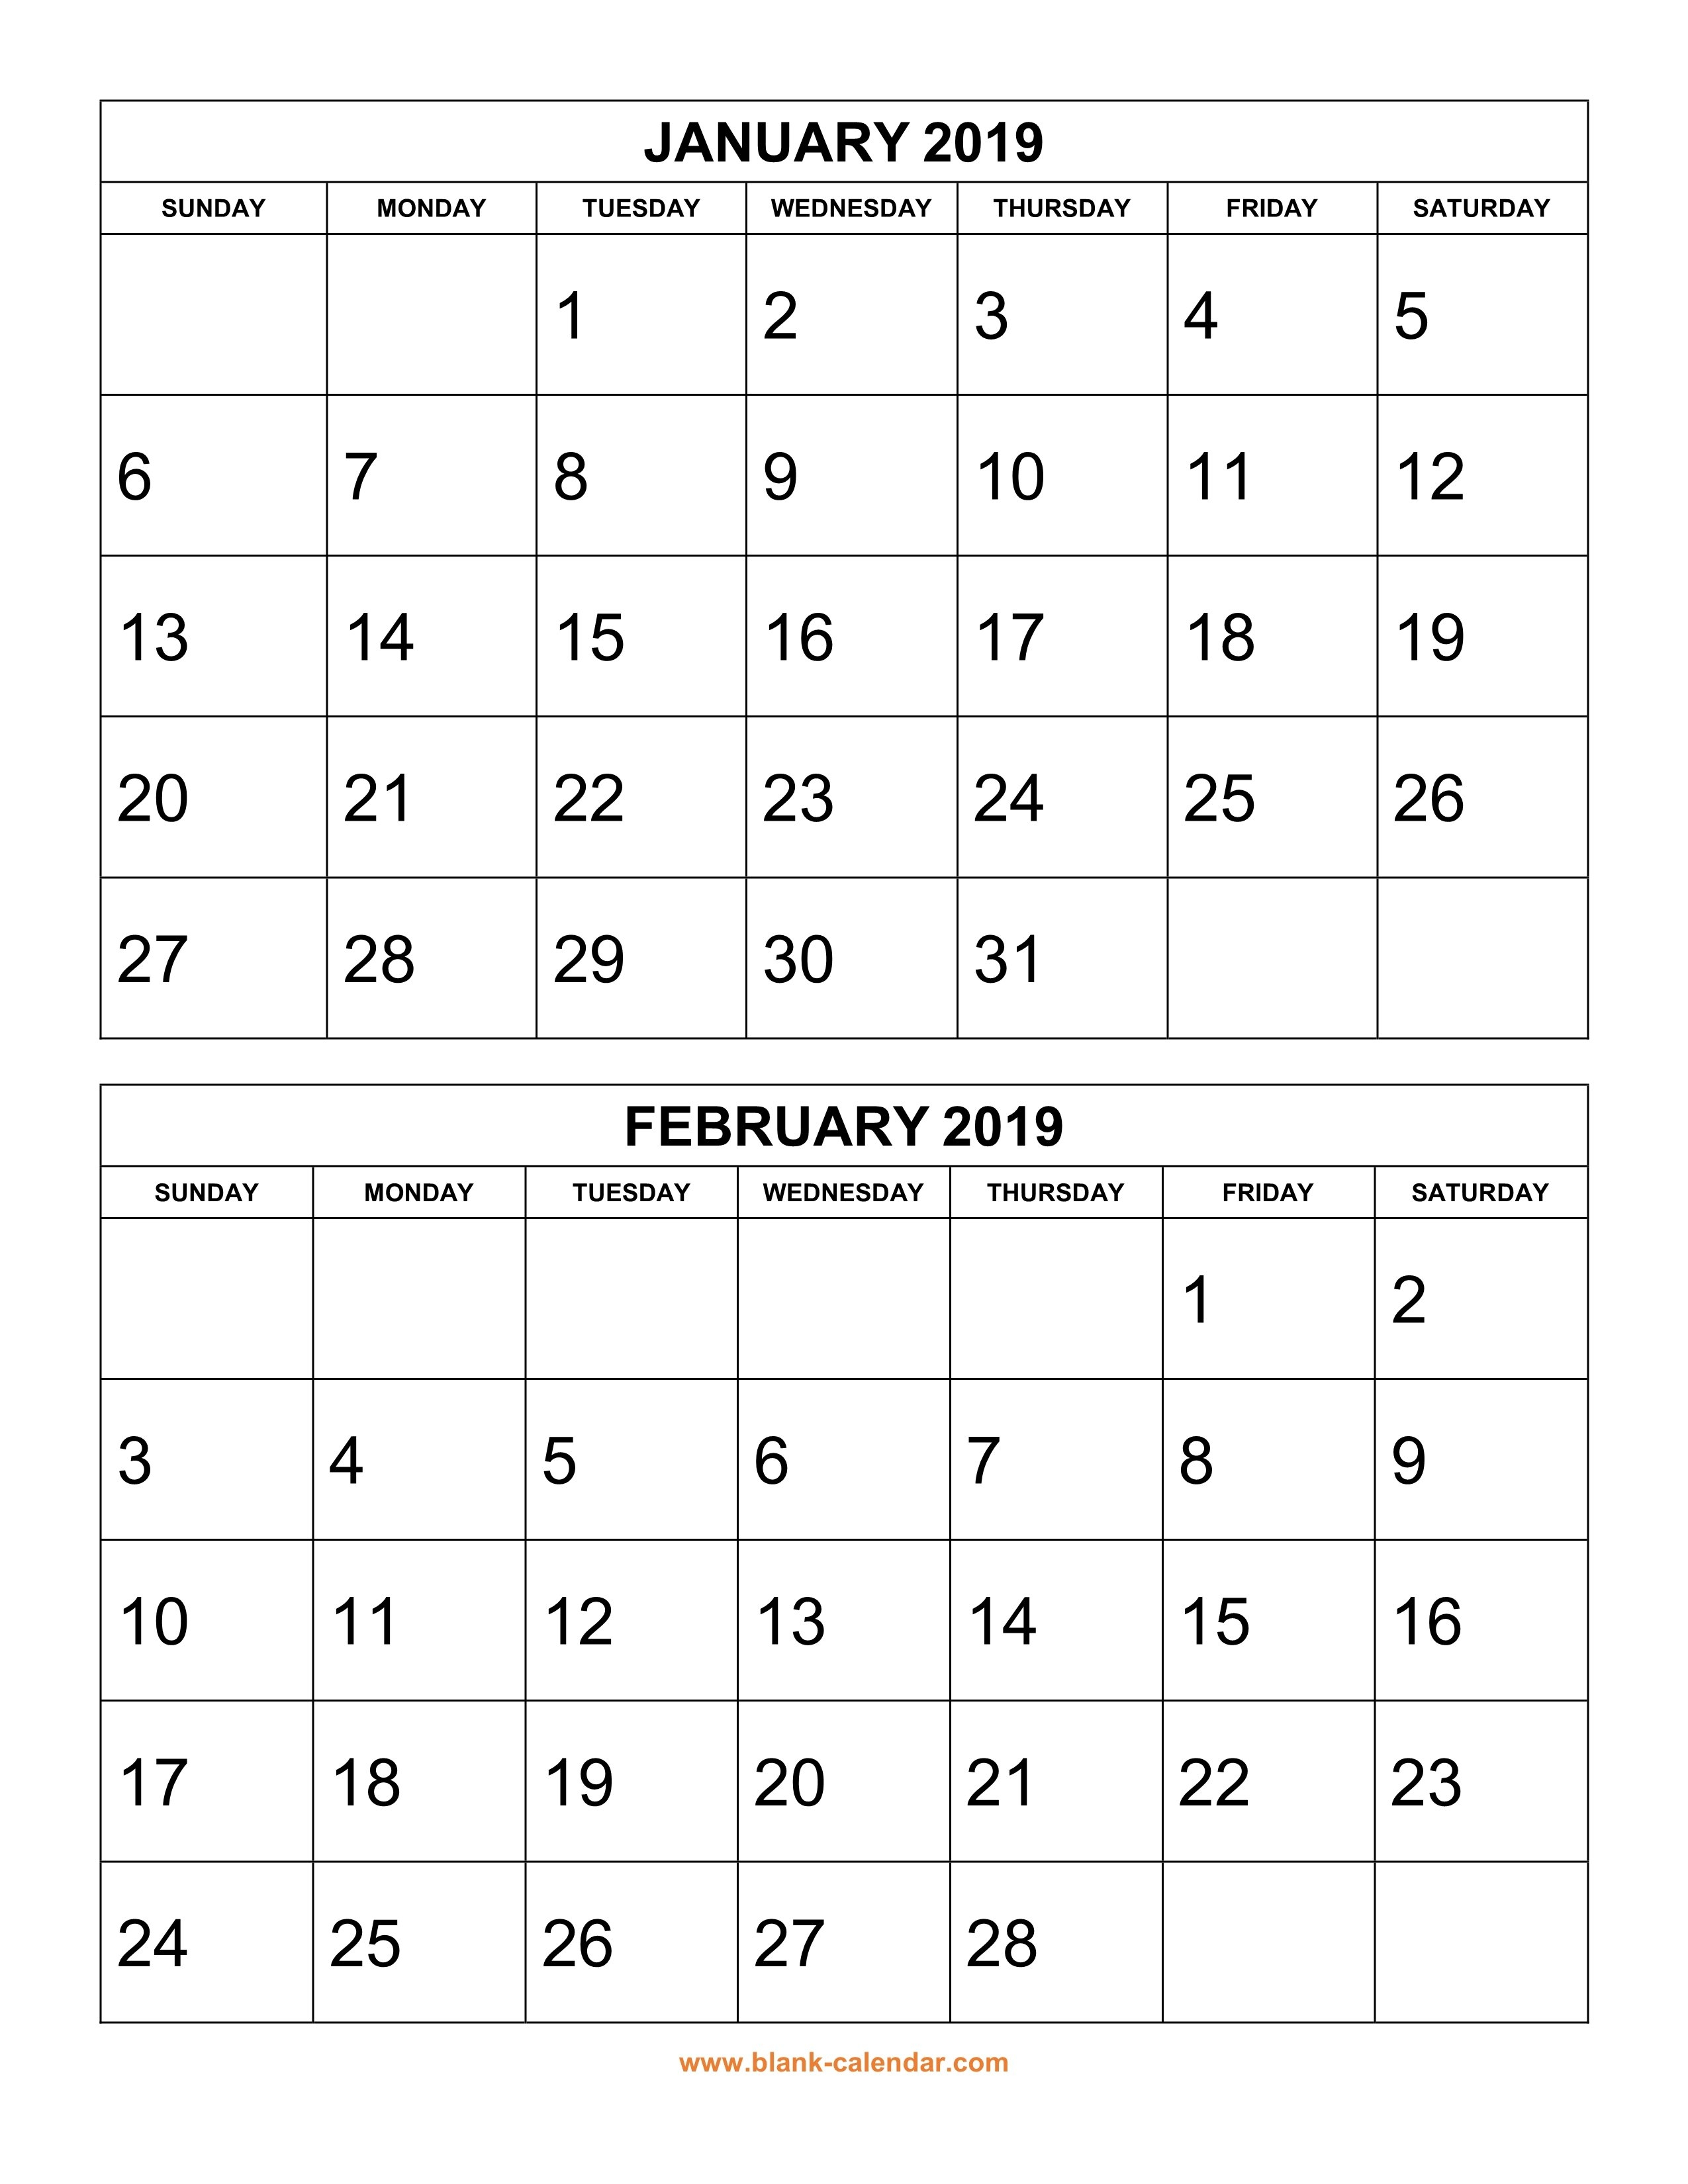 Free Download Printable Calendar 2019, 2 Months Per Page, 6 Pages Calendar 2019 All Months